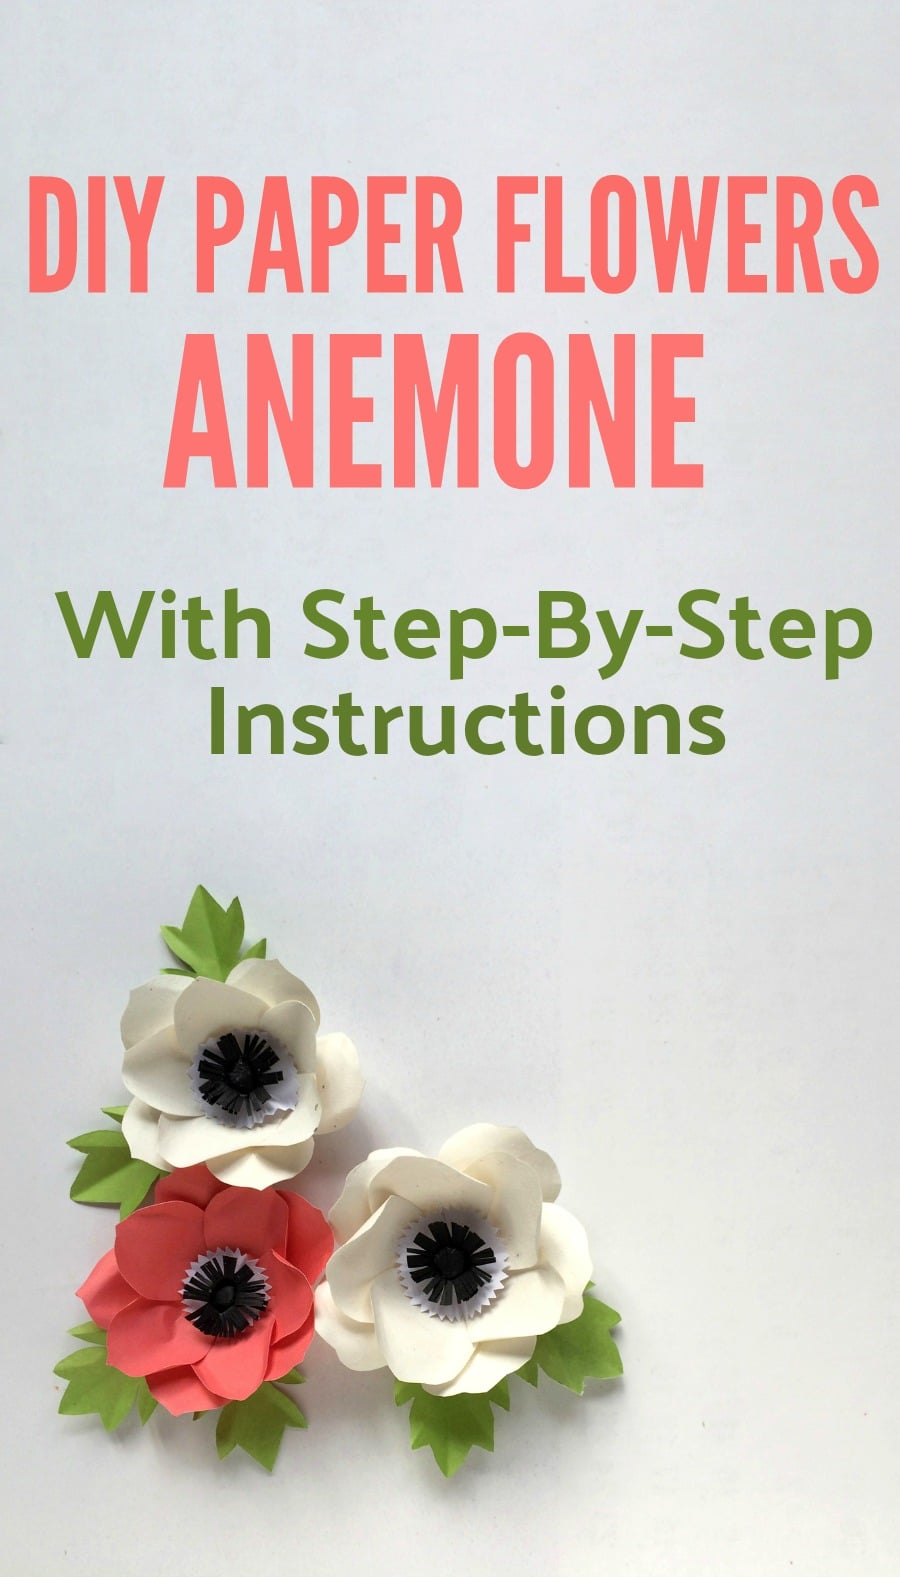 diy paper flowers anemone craft with step by step instructions